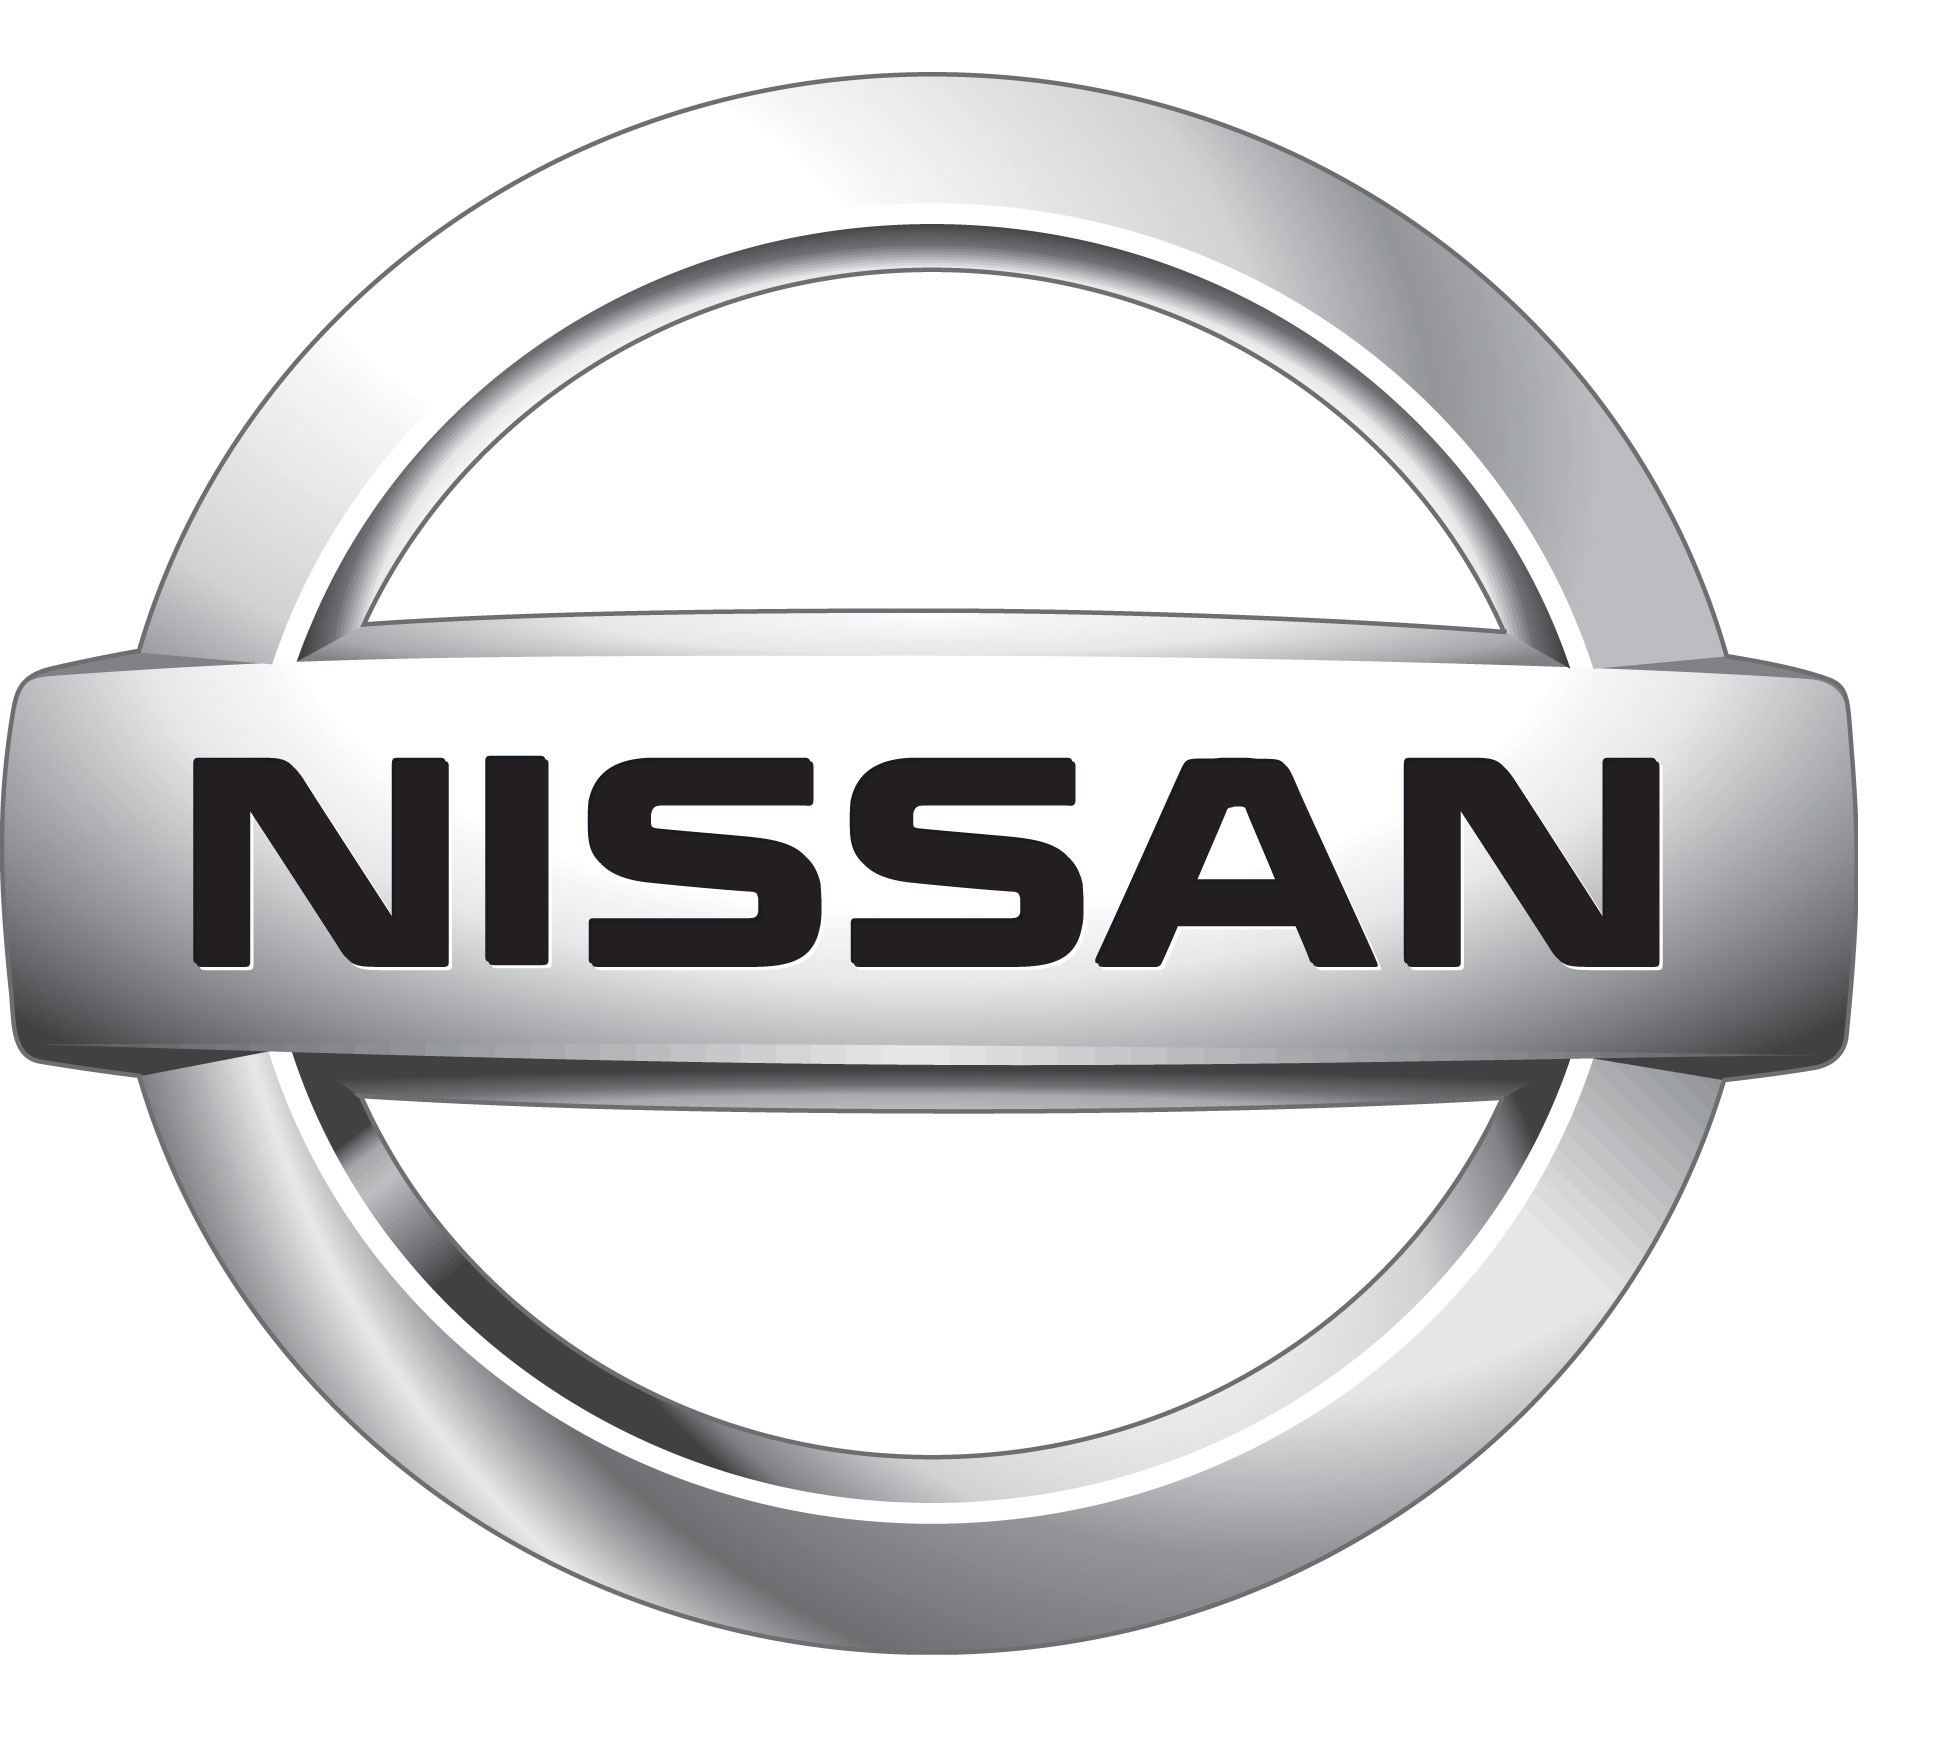 Nissan related emblems